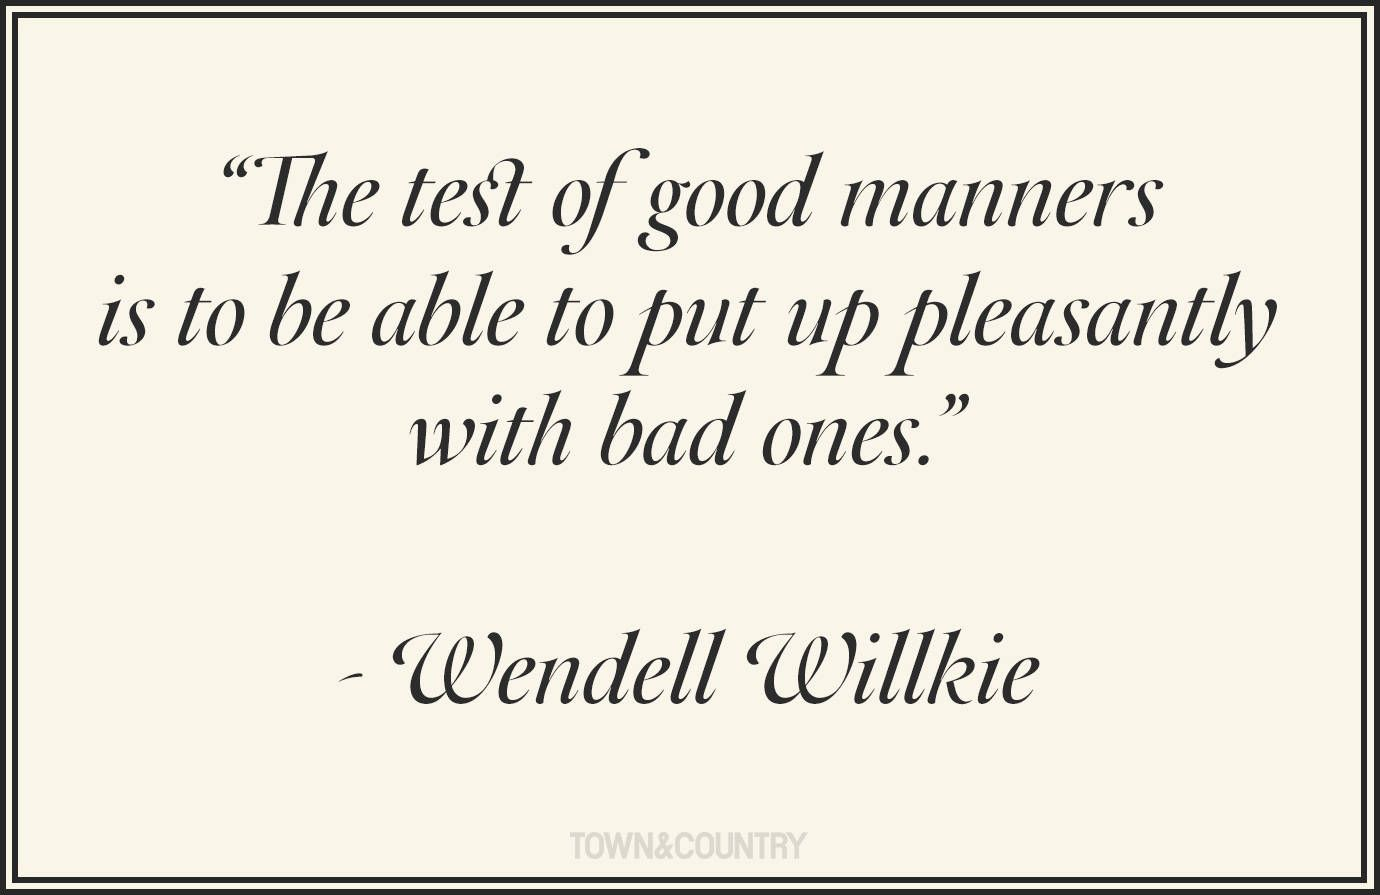 Quotes on etiquette and good education